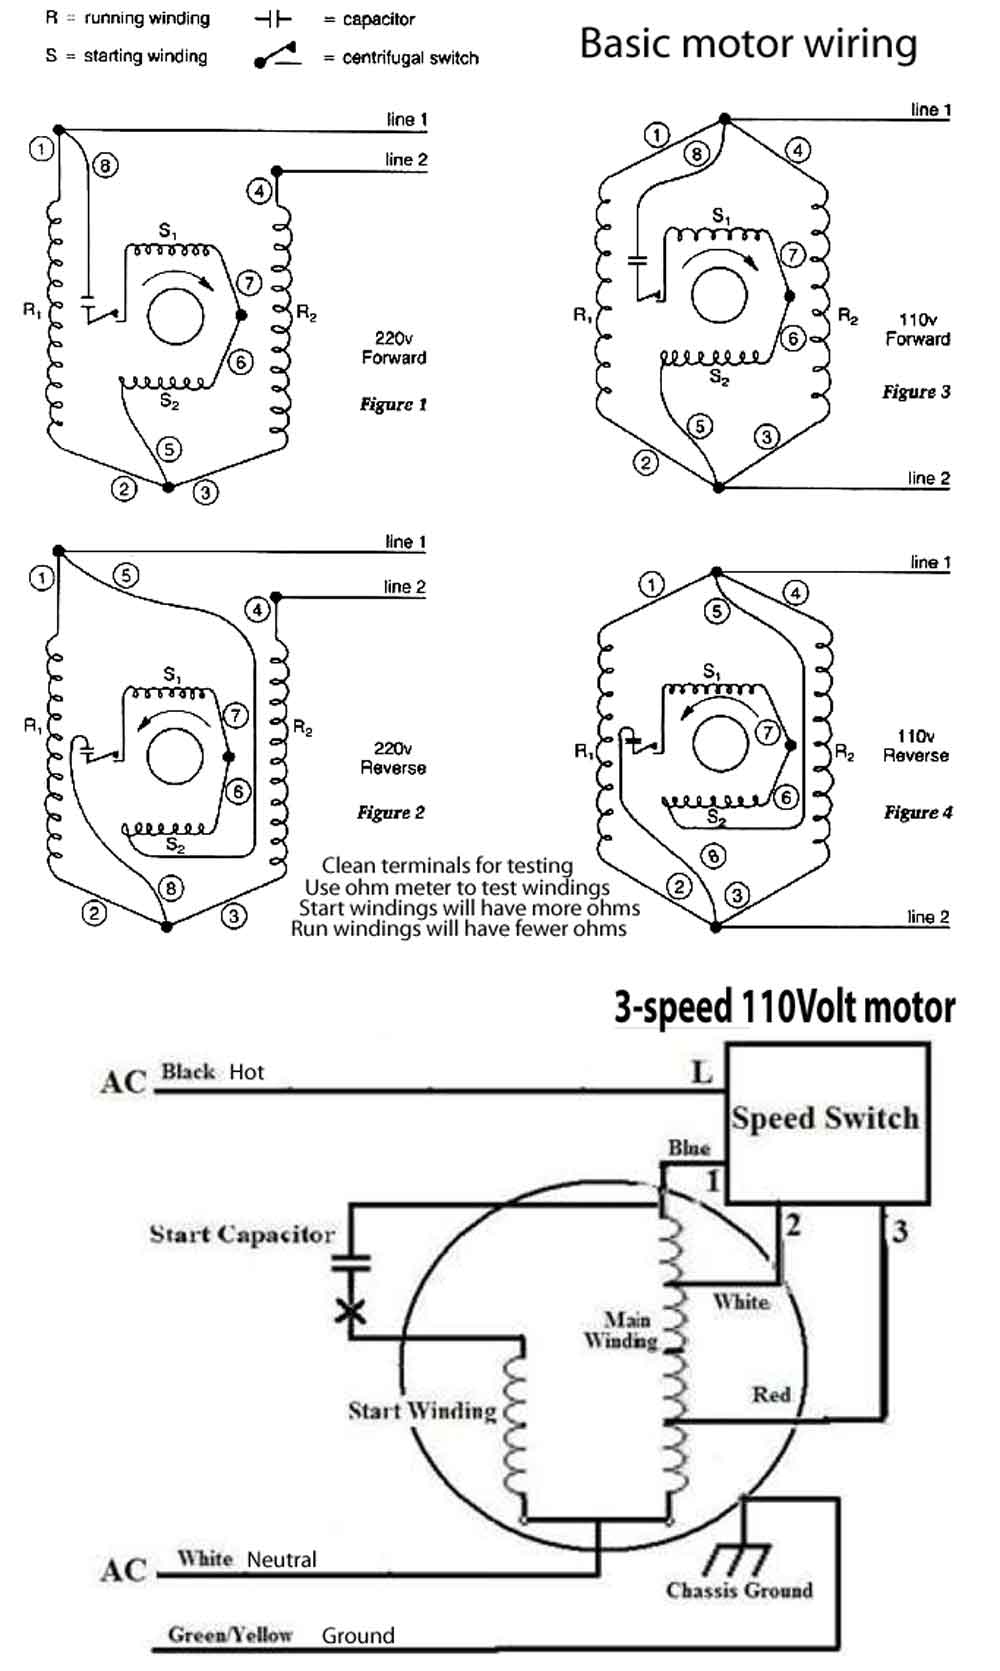 Motor wiring 500 color code for residential wire how to match wire size and  at bakdesigns.co